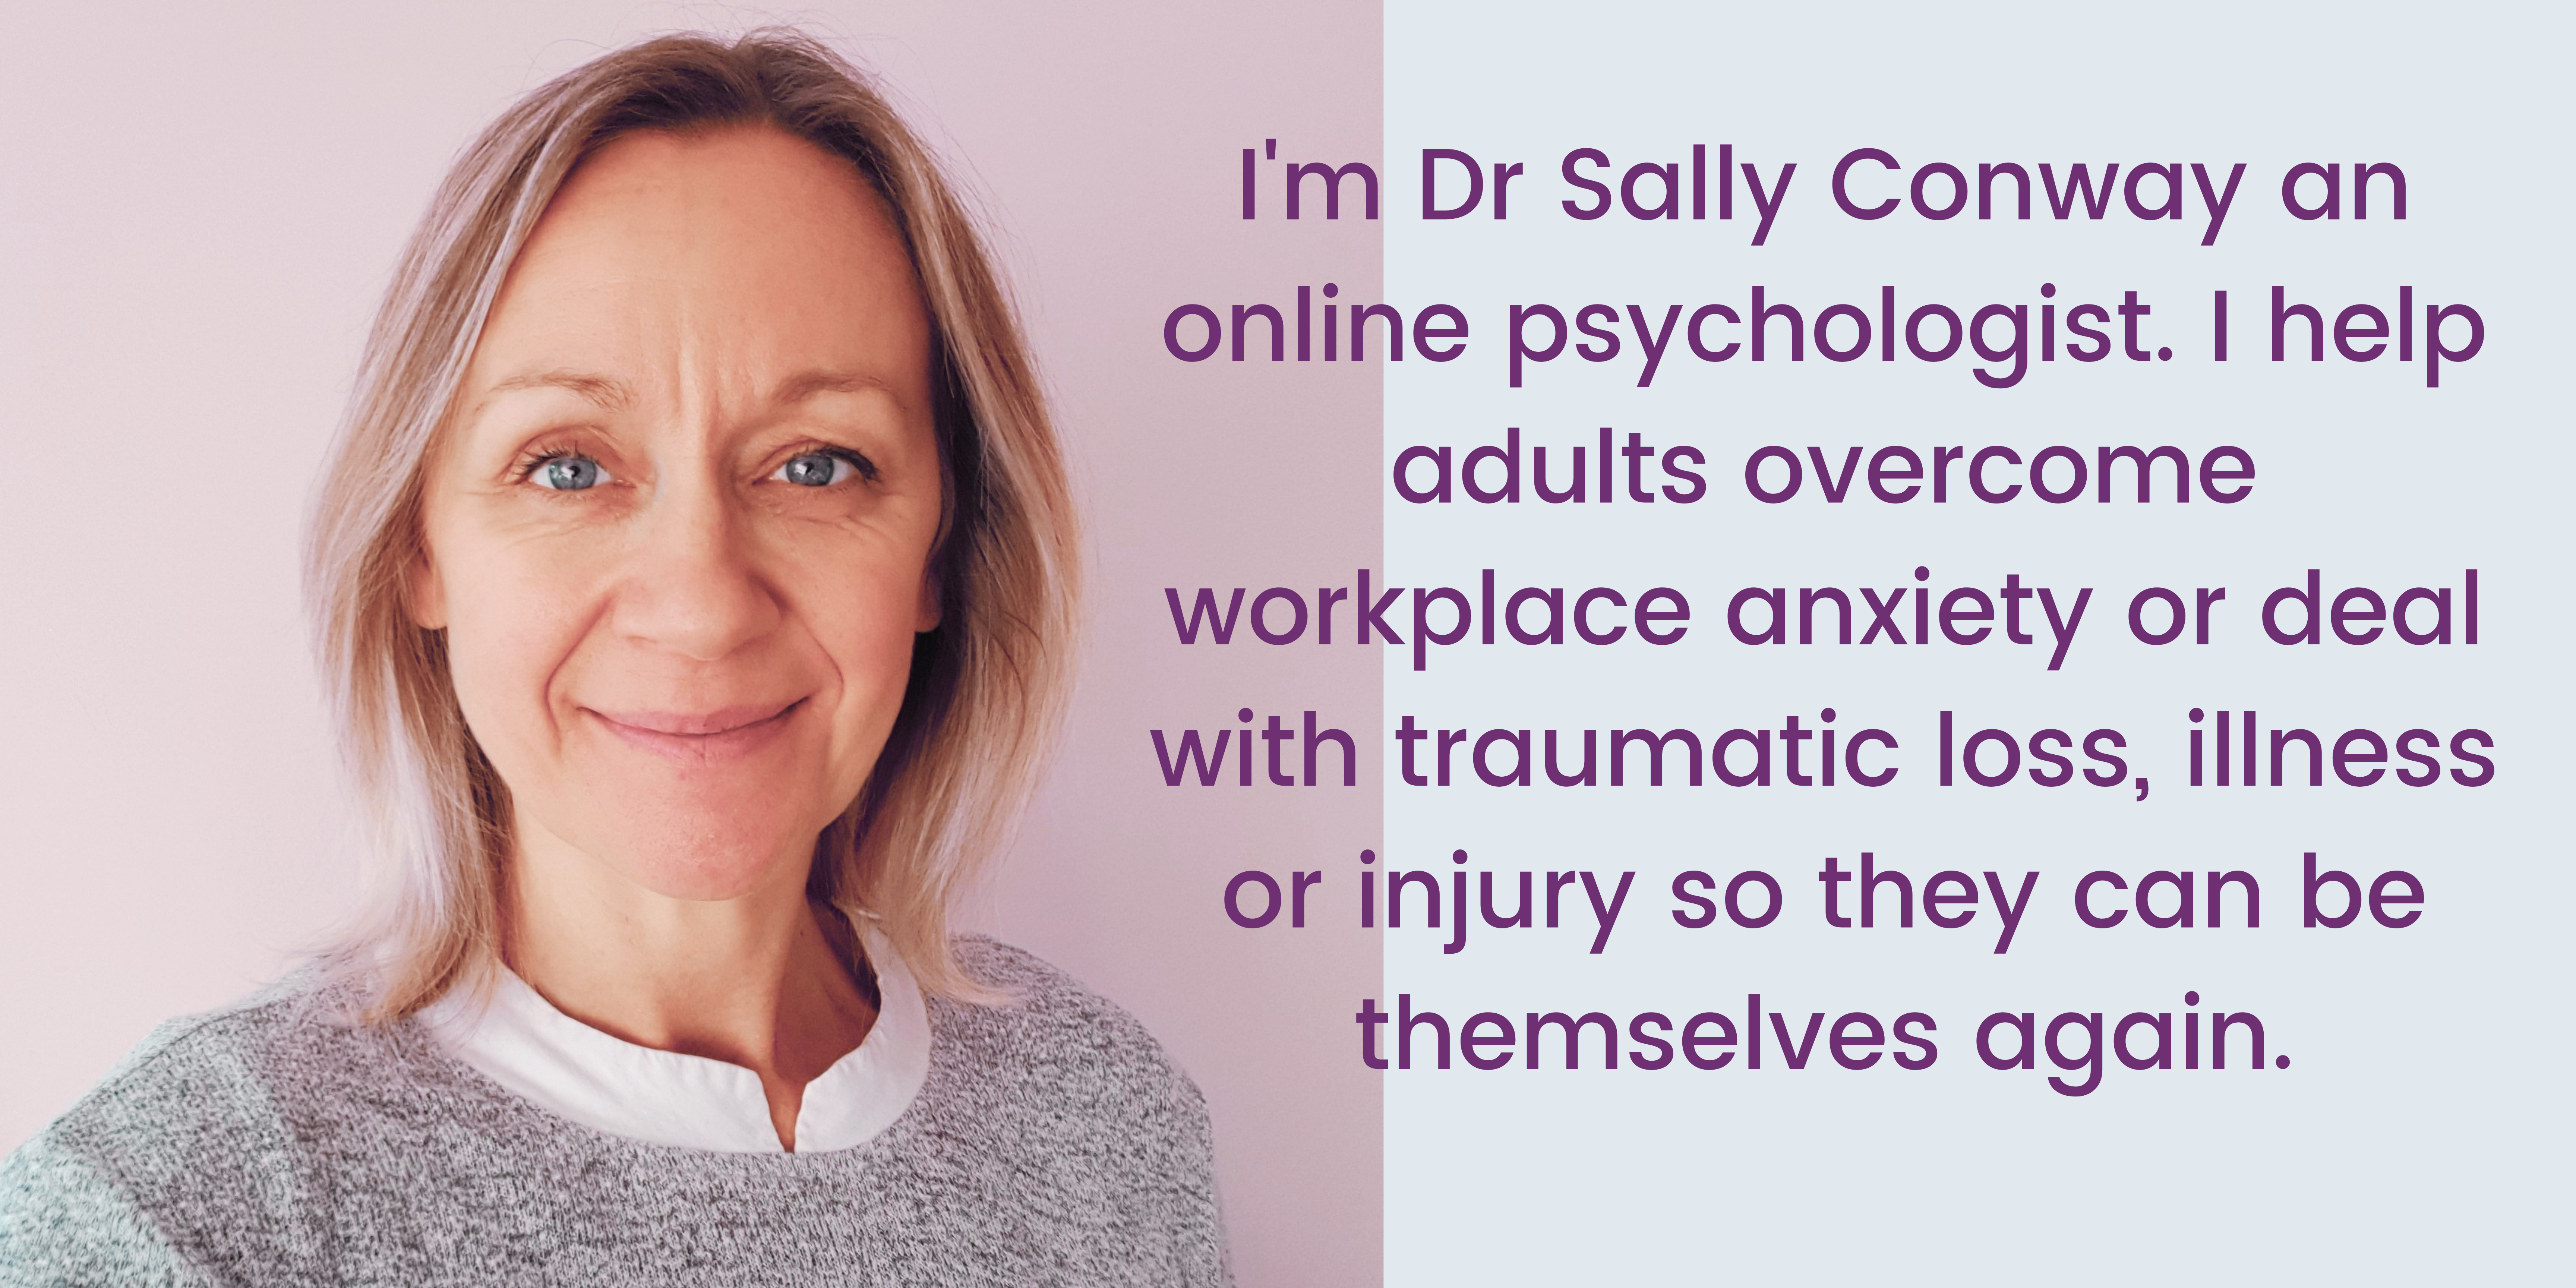 Dr Sally Conway online psychologist helping people with workplace anxiety and trauma